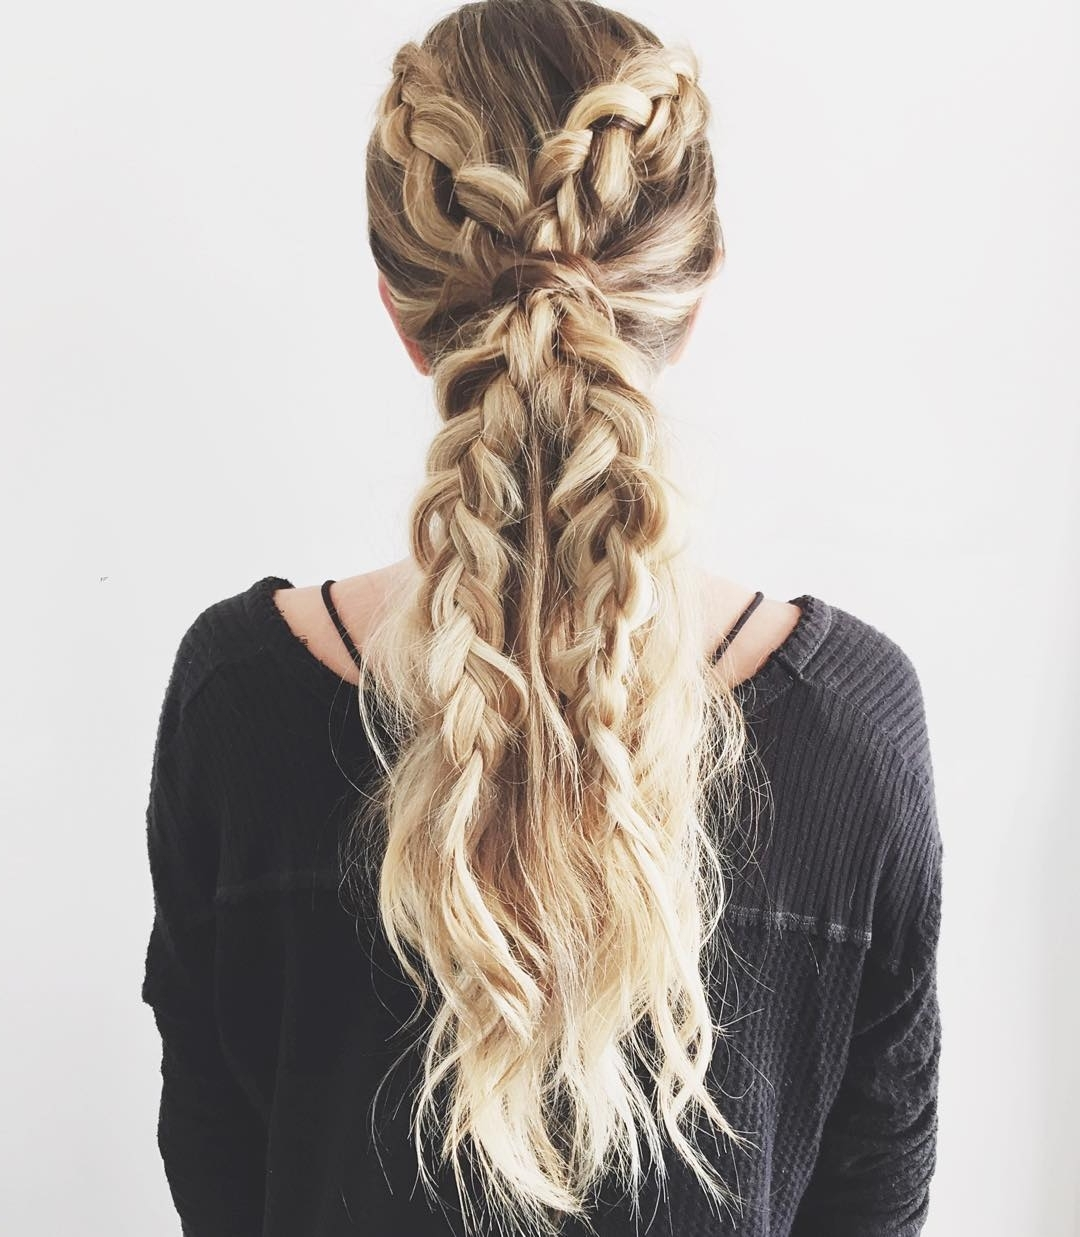 30 Braided Ponytail Hairstyles To Slay In  (View 3 of 20)